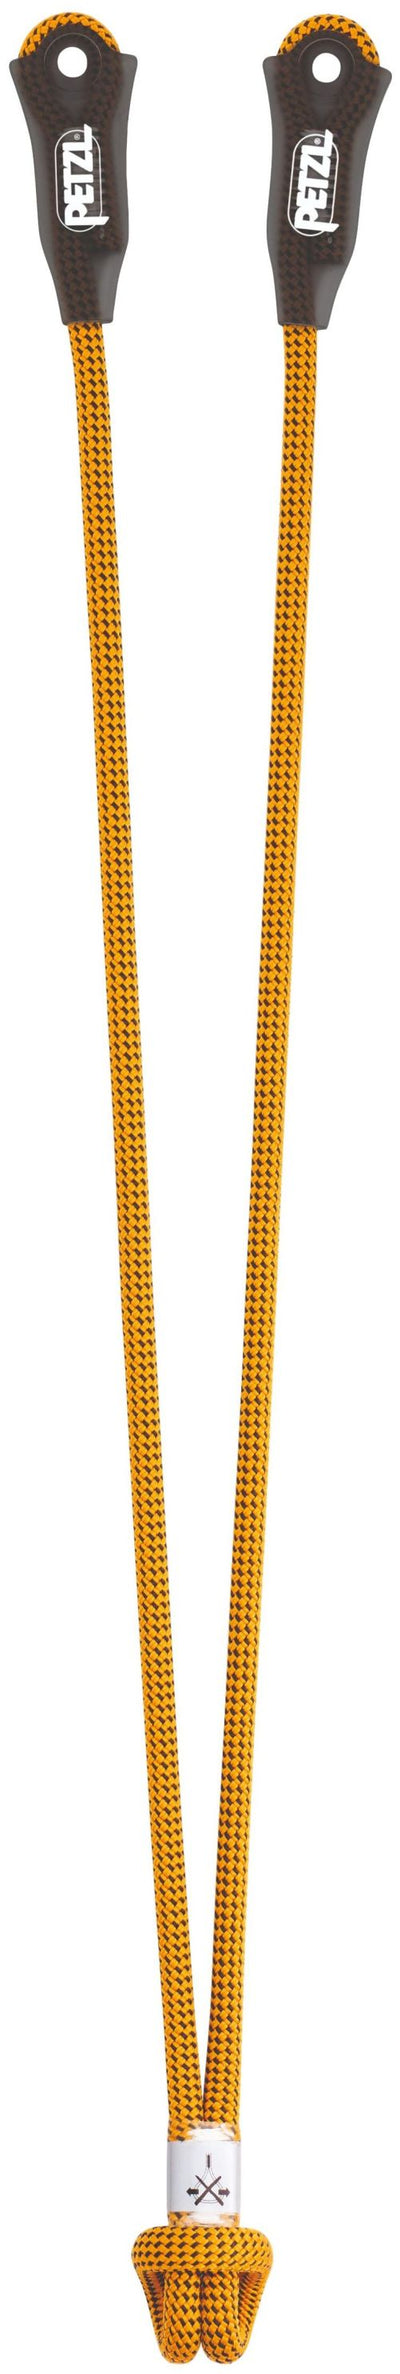 Petzl Dual Canyon Club Lanyard